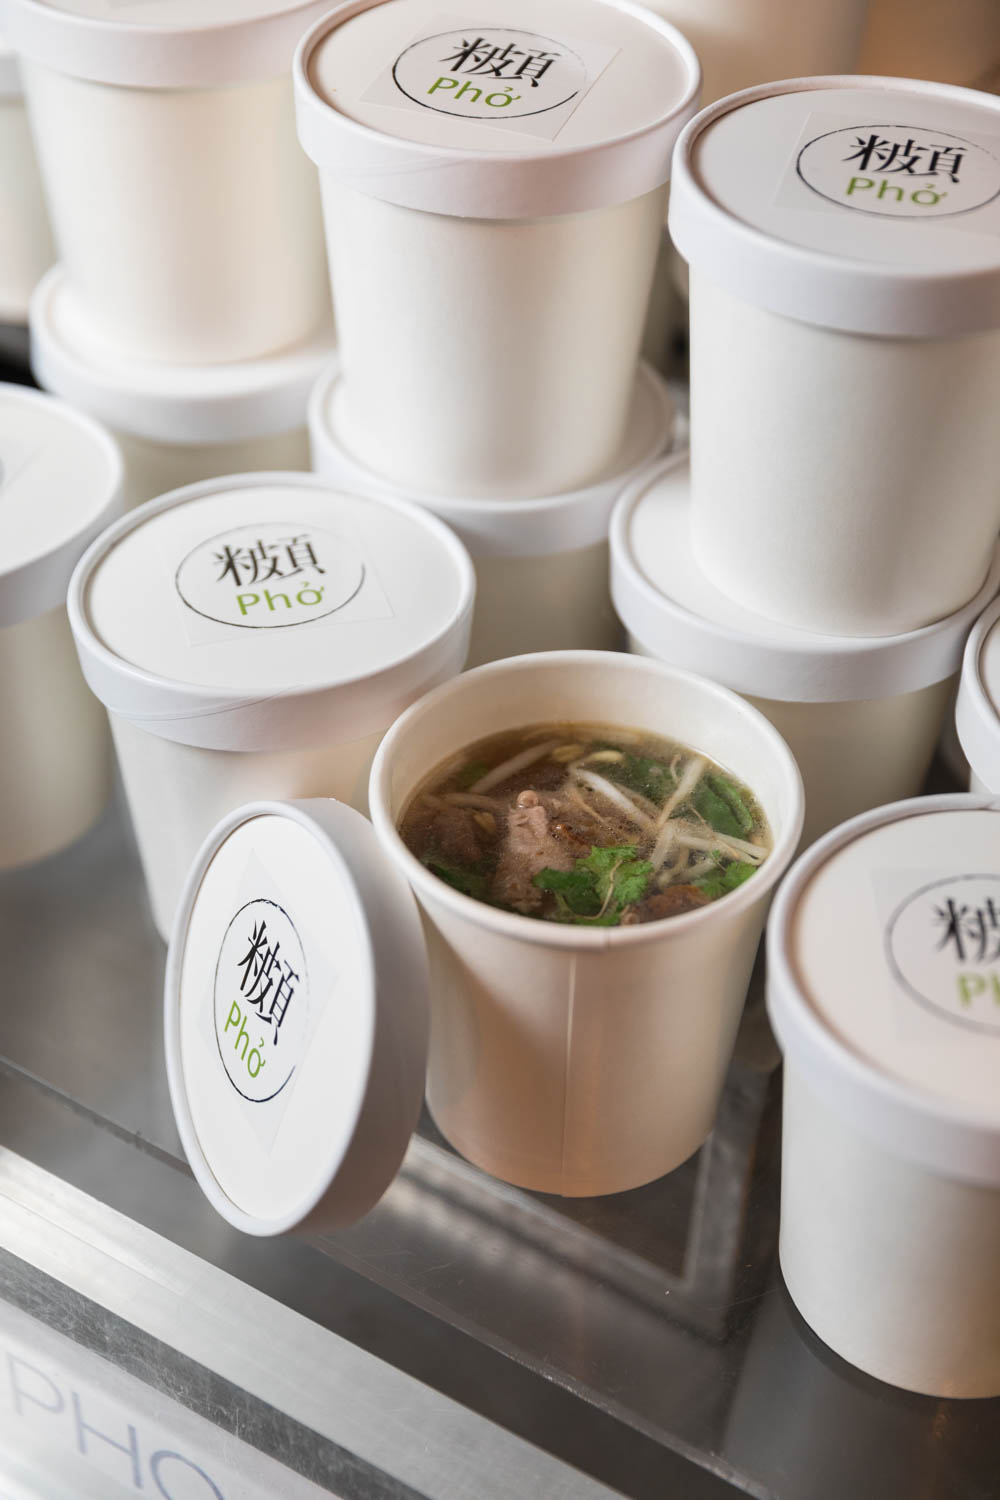 Cups of Phở